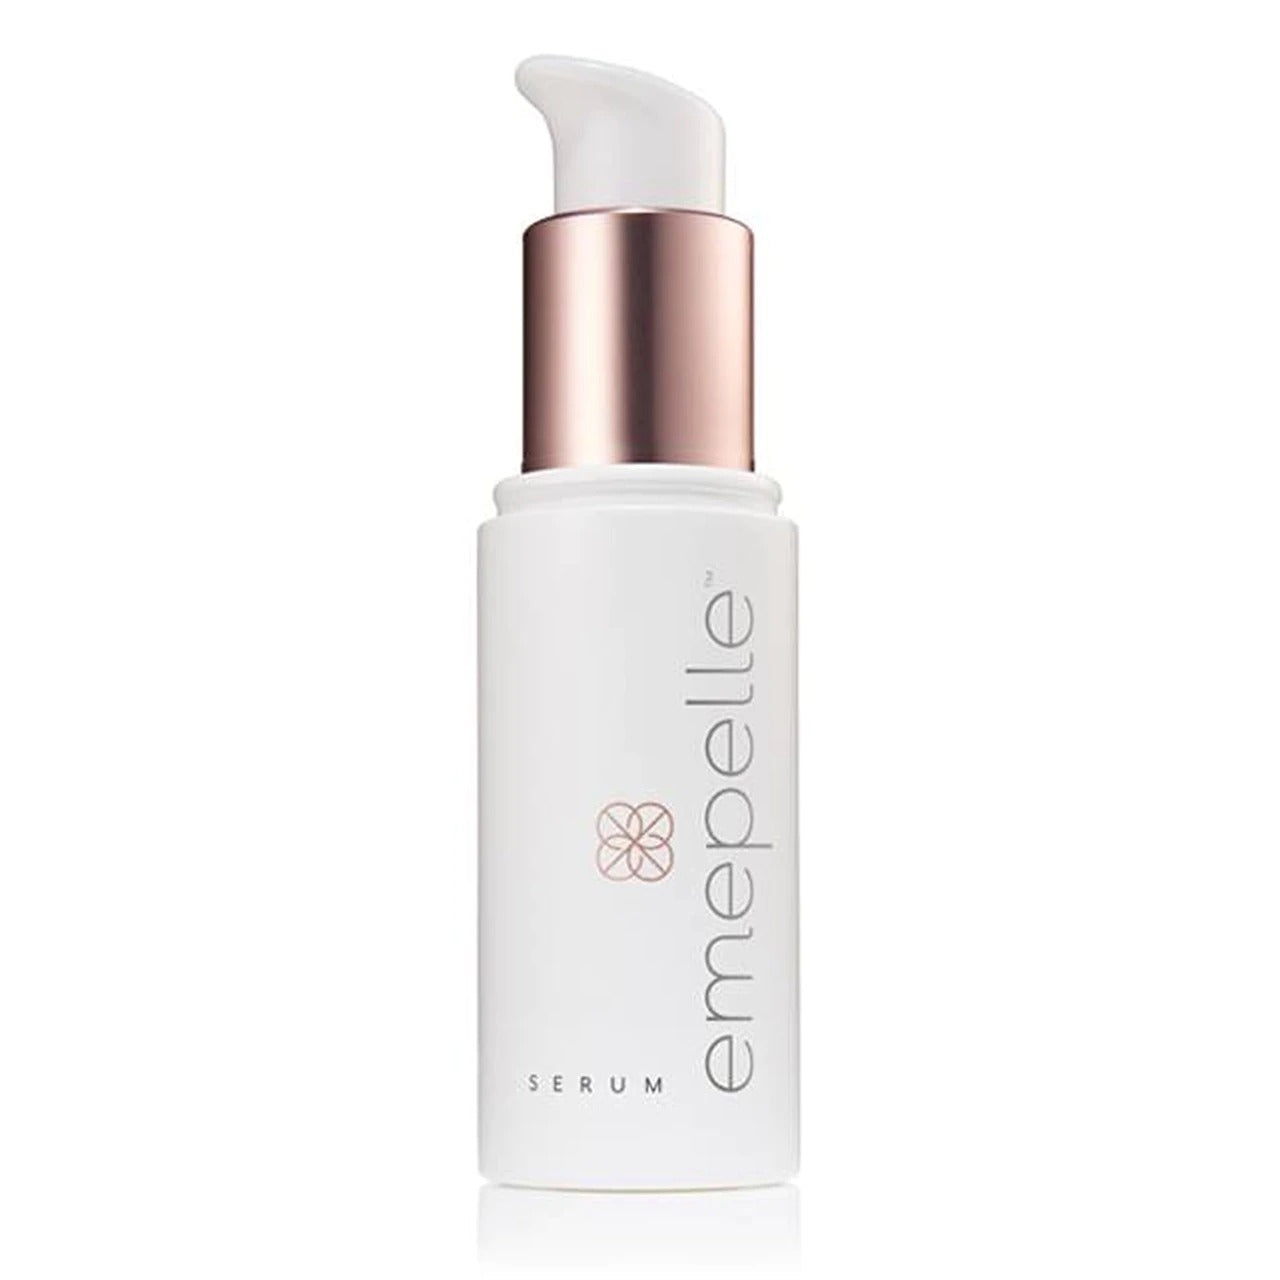 Biopelle Emepelle Serum